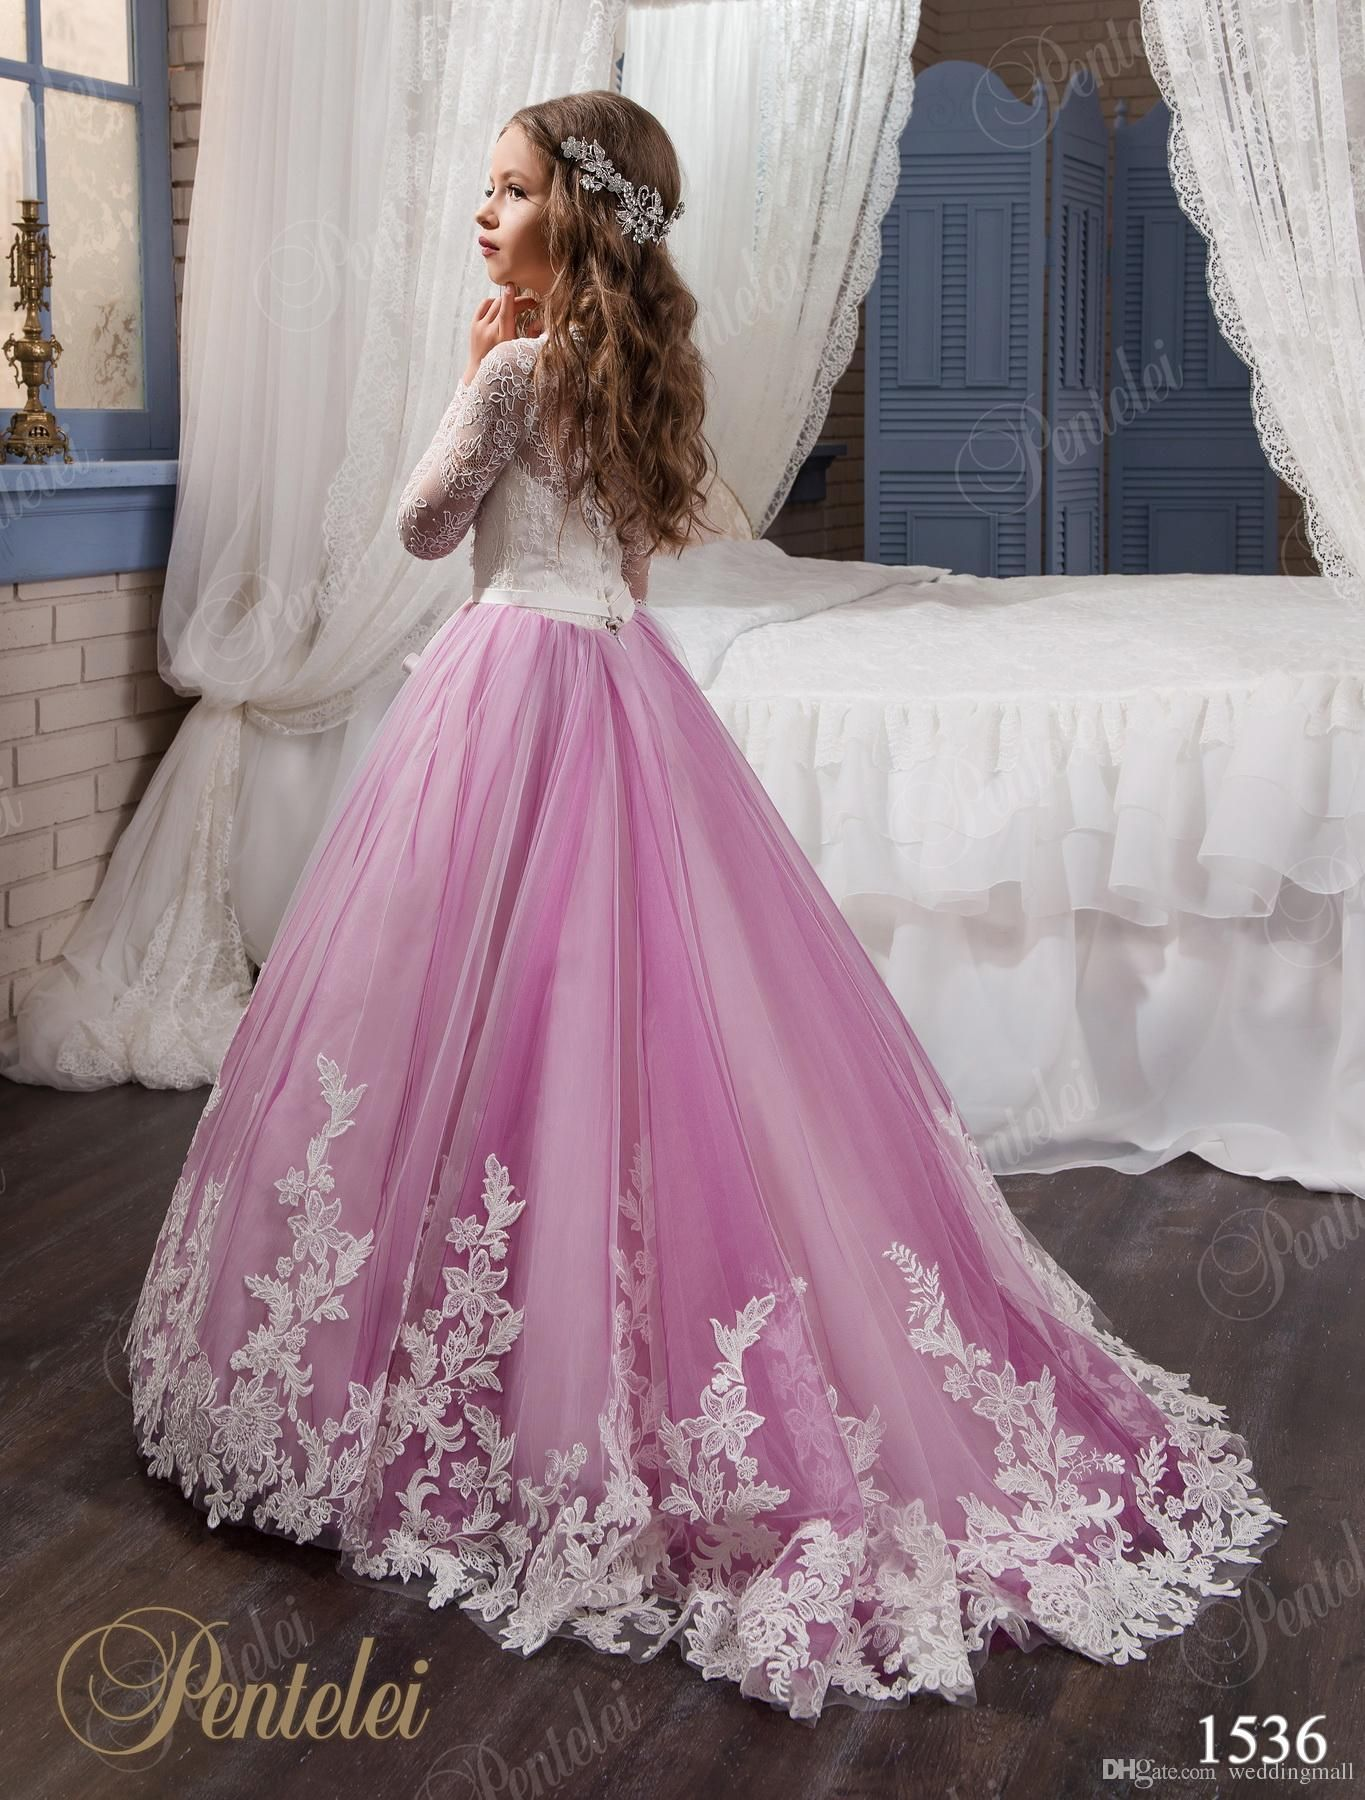 Cheap vintage princess floral lace arabic 2017 flower girl dresses cheap vintage princess floral lace arabic 2017 flower girl dresses long sleeves tulle child dresses beautiful flower girl wedding dresses f0678 as low as izmirmasajfo Images